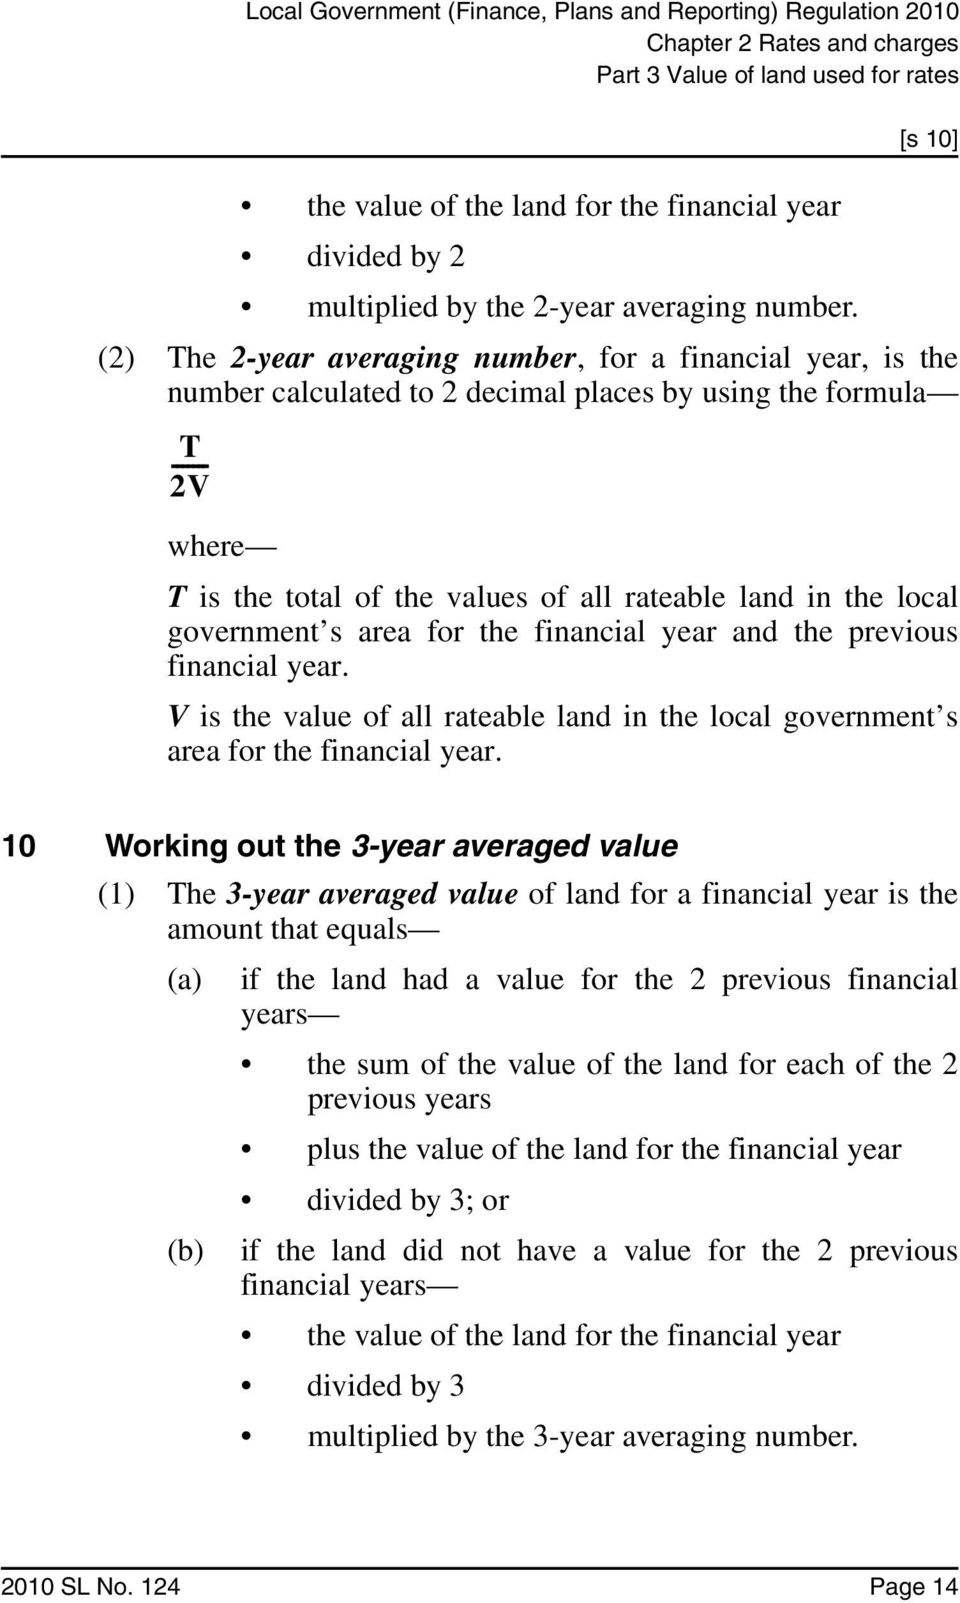 local government s area for the financial year and the previous financial year. V is the value of all rateable land in the local government s area for the financial year.